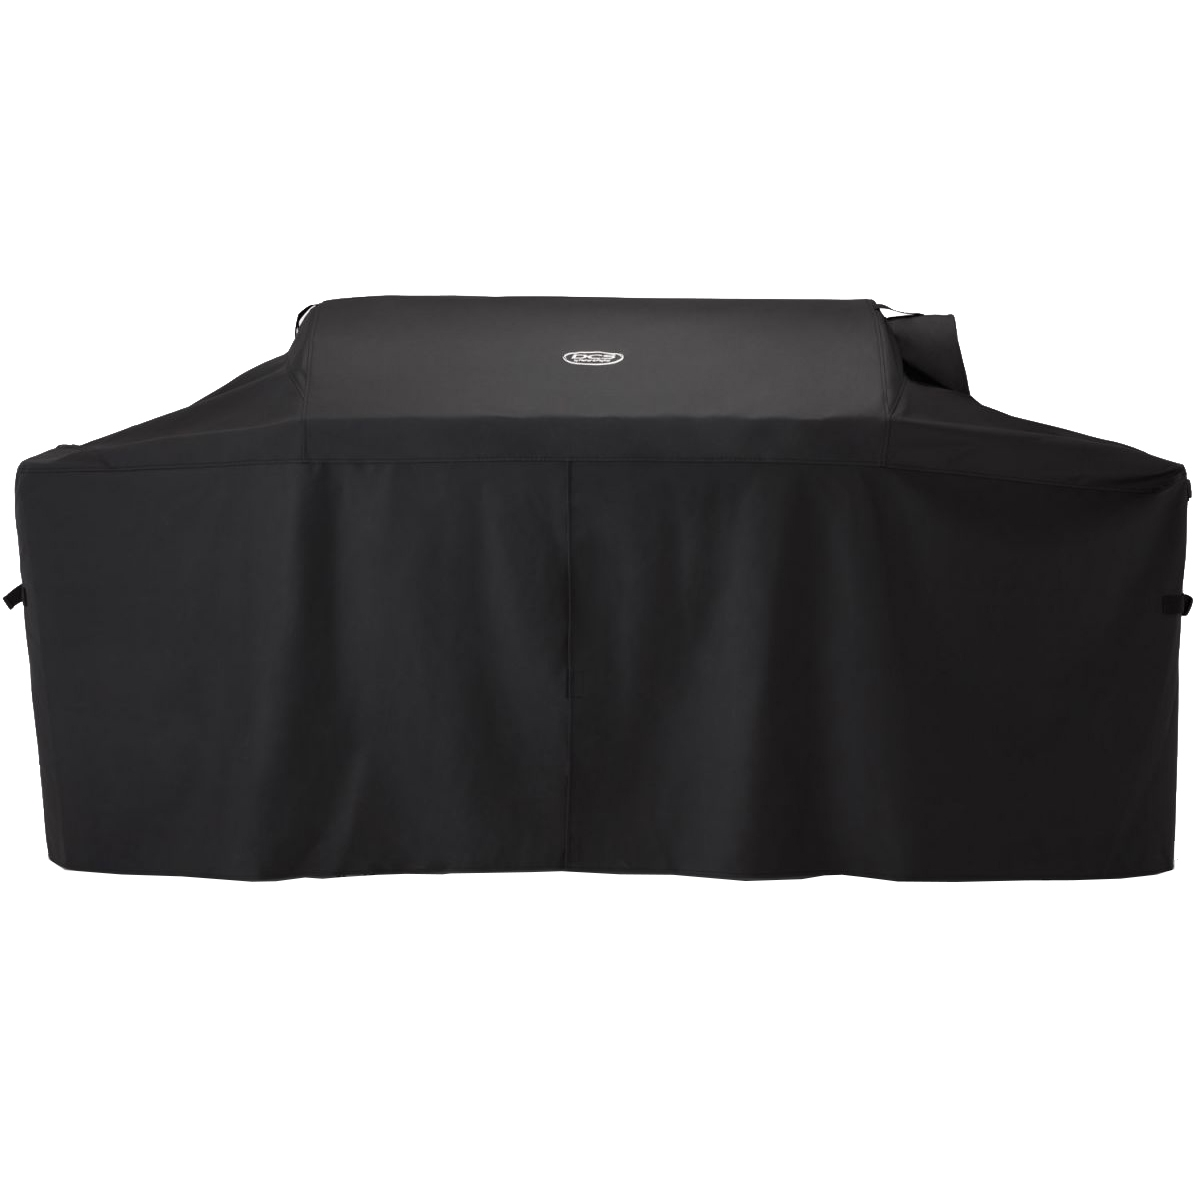 DCS Grill Cover for 48 inch Built In Grills